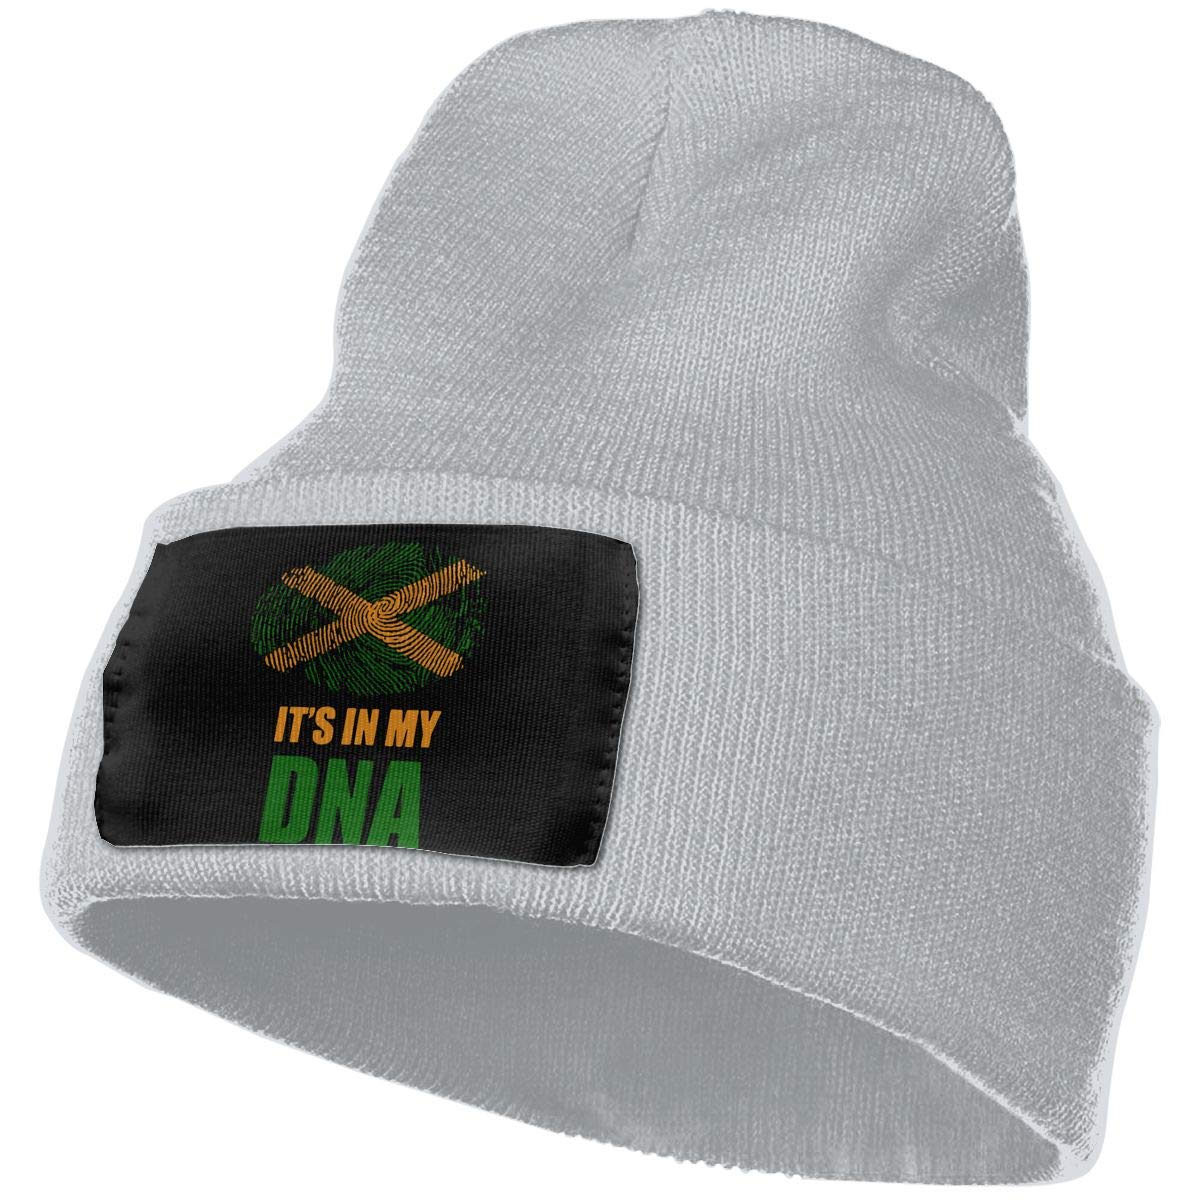 Unisex 100/% Acrylic Knit Hat Cap Jamaican Its in My DNA Cute Beanie Hat